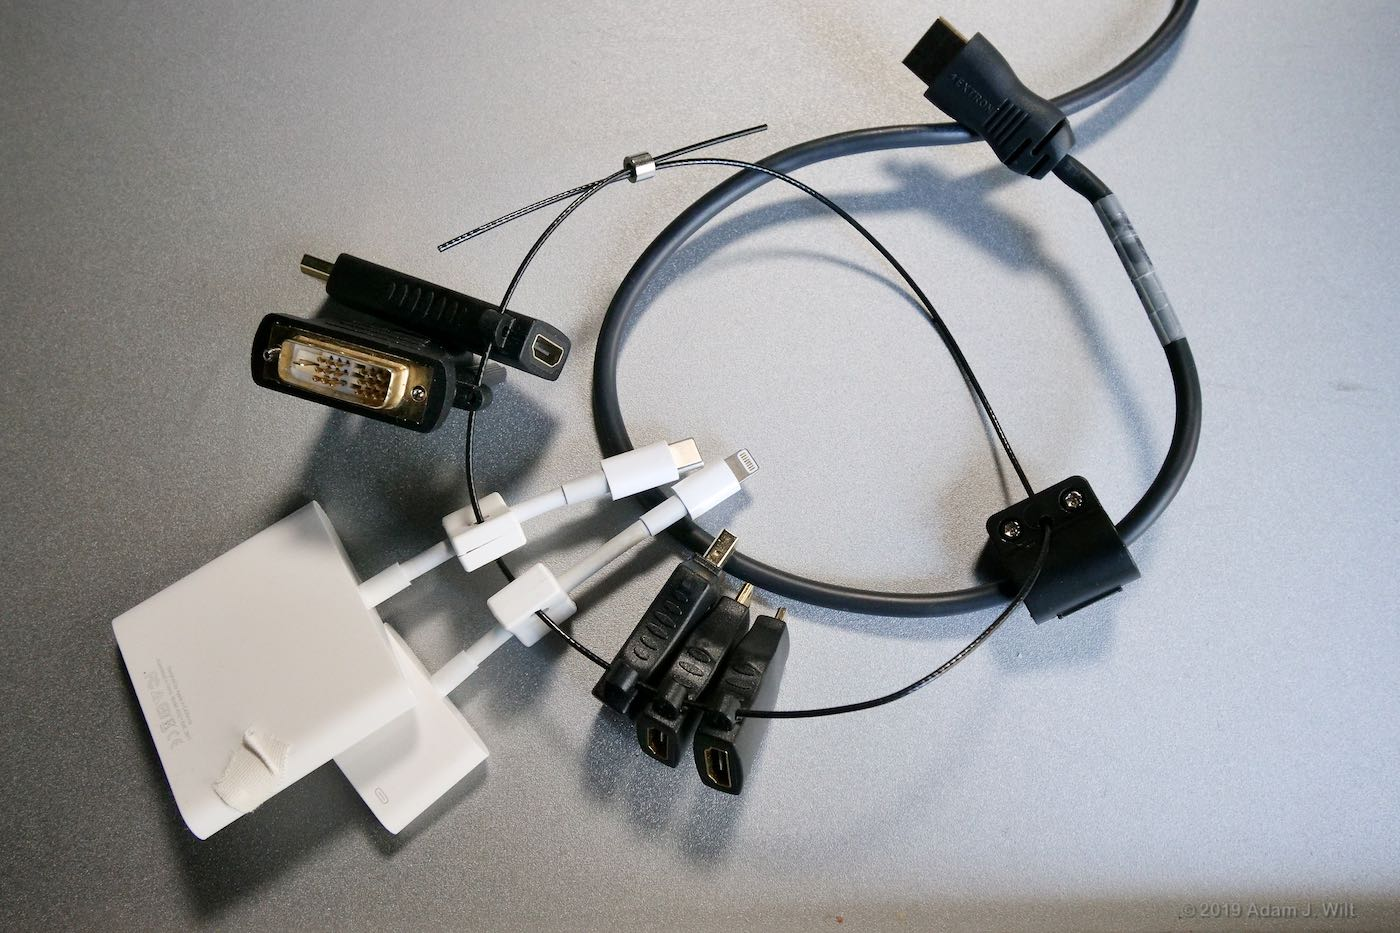 Array of video connection adapters in the classroom